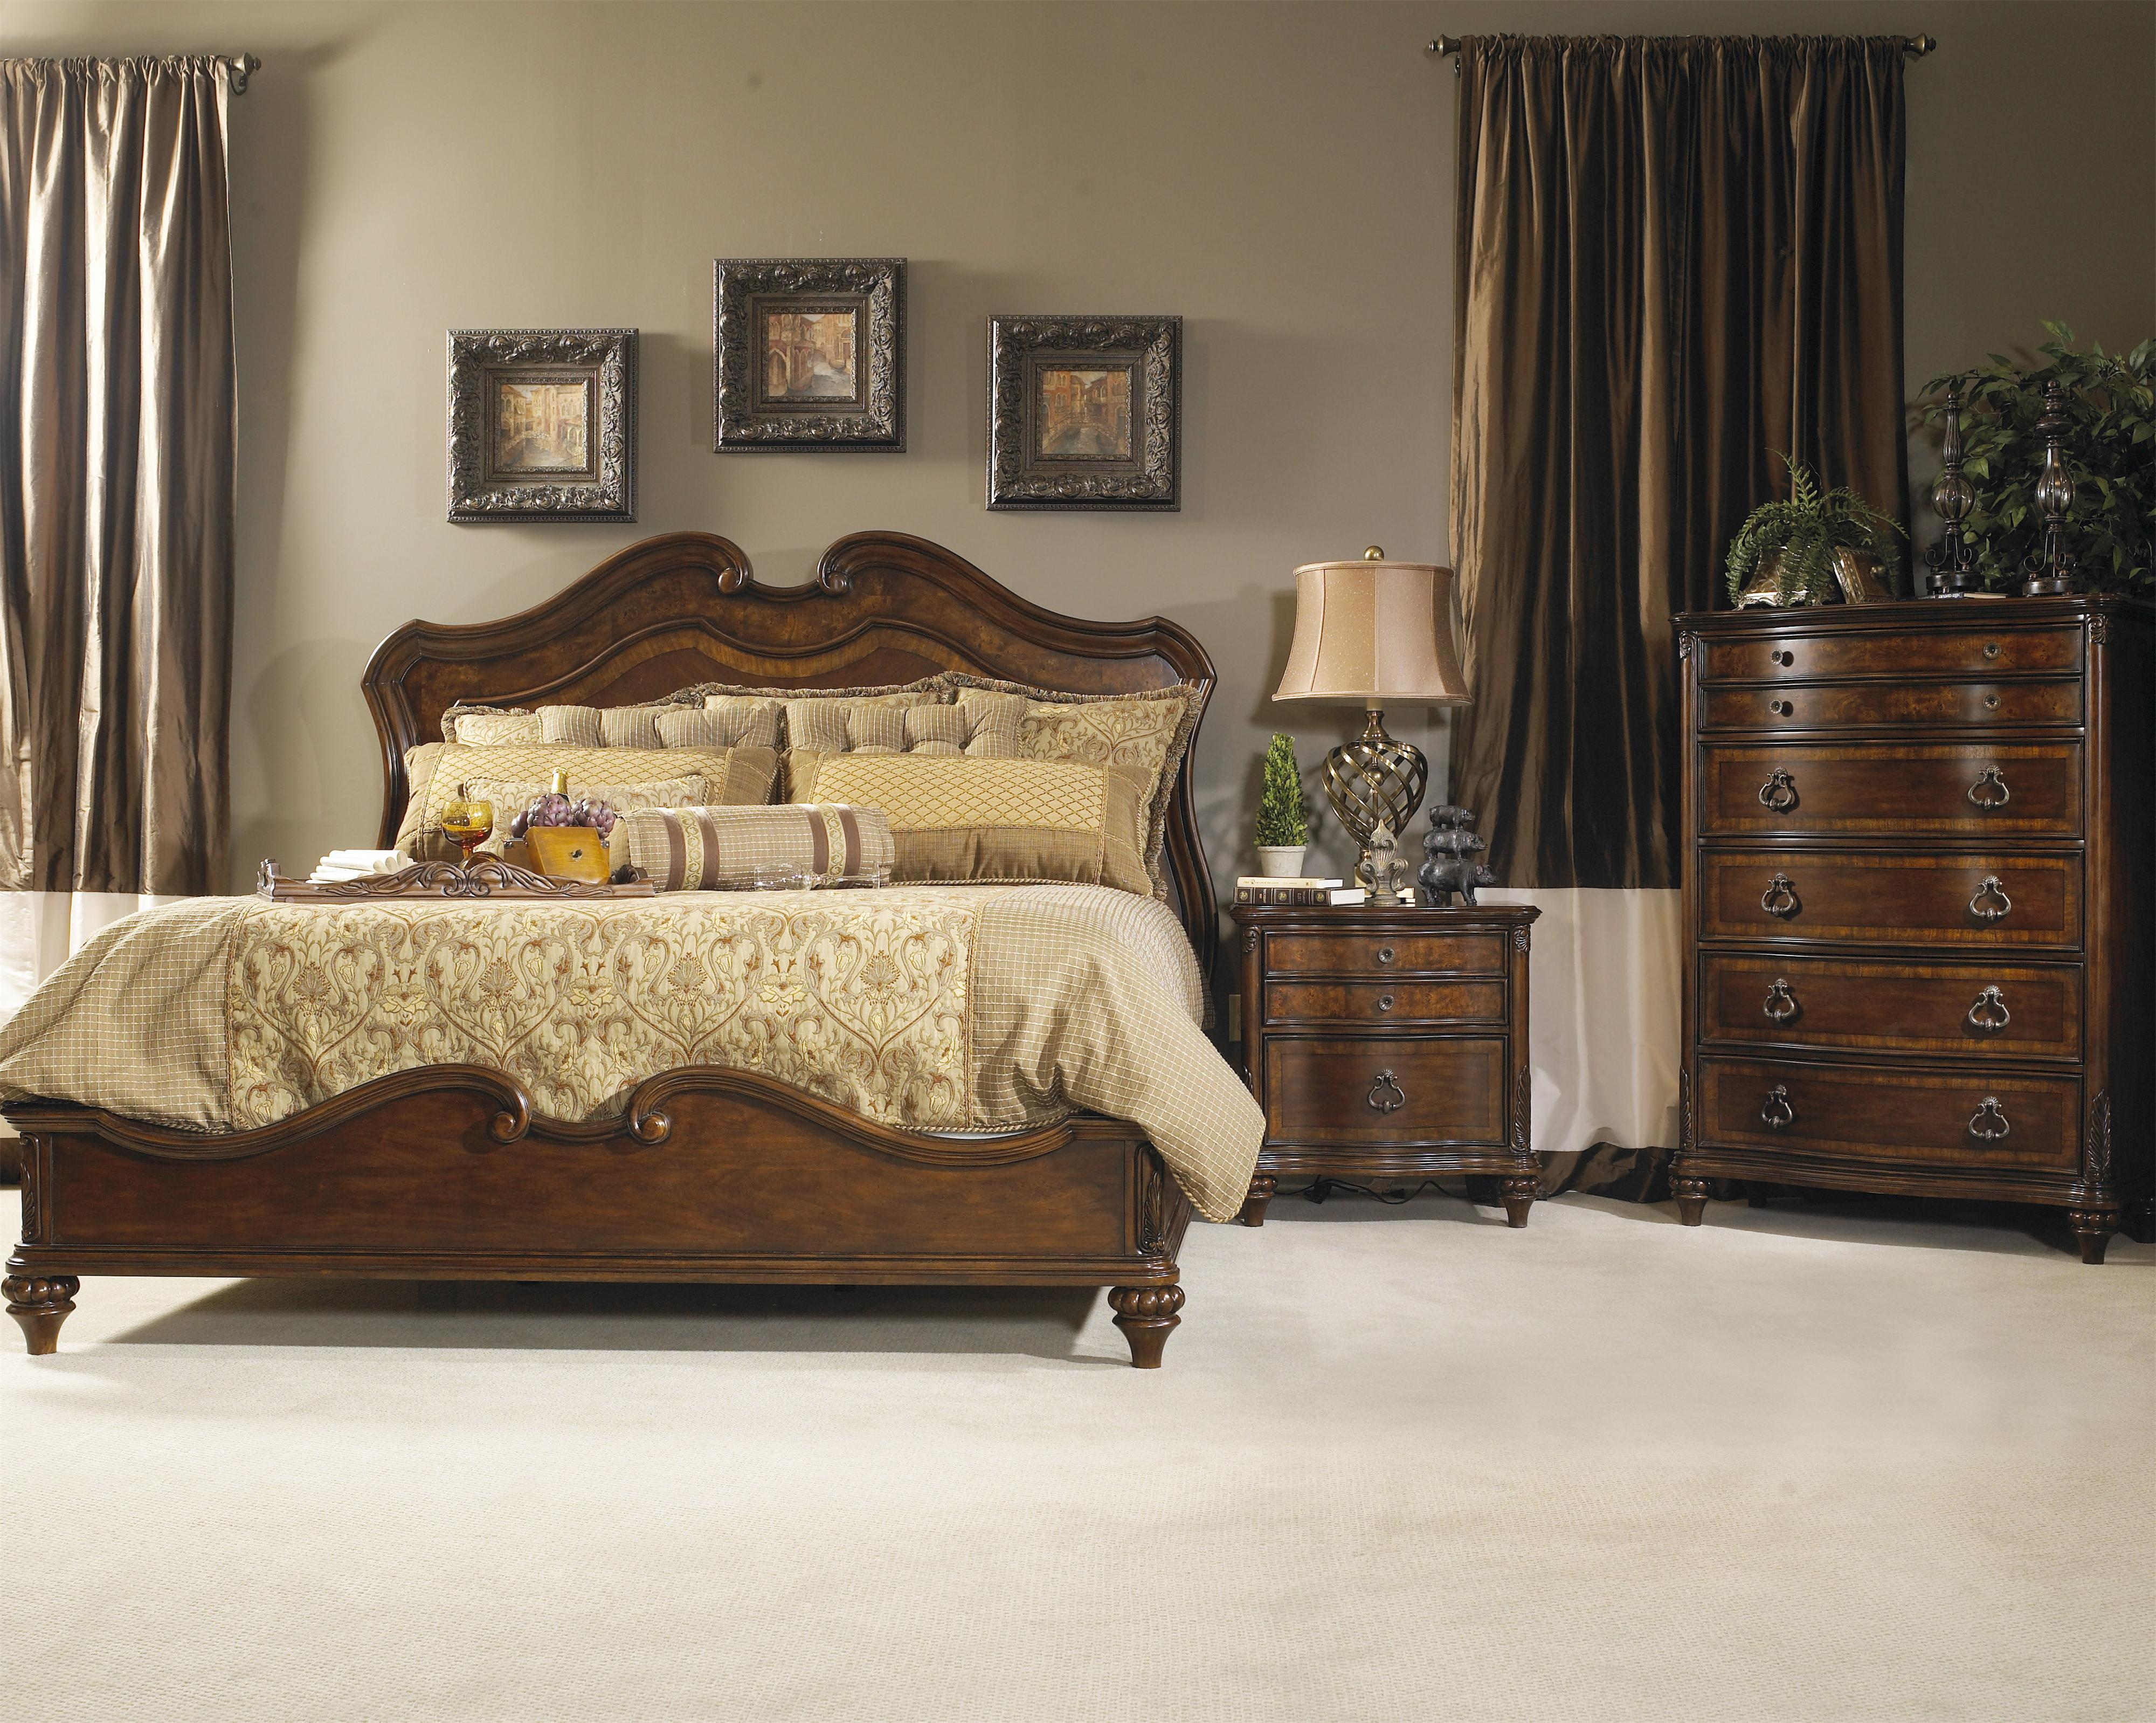 Fairmont Designs Marisol 5 Piece California King Bedroom Set   Dream Home  Furniture   Bedroom Group Roswell  Kennesaw  Alpharetta  Marietta  Atlanta. Fairmont Designs Marisol 5 Piece California King Bedroom Set